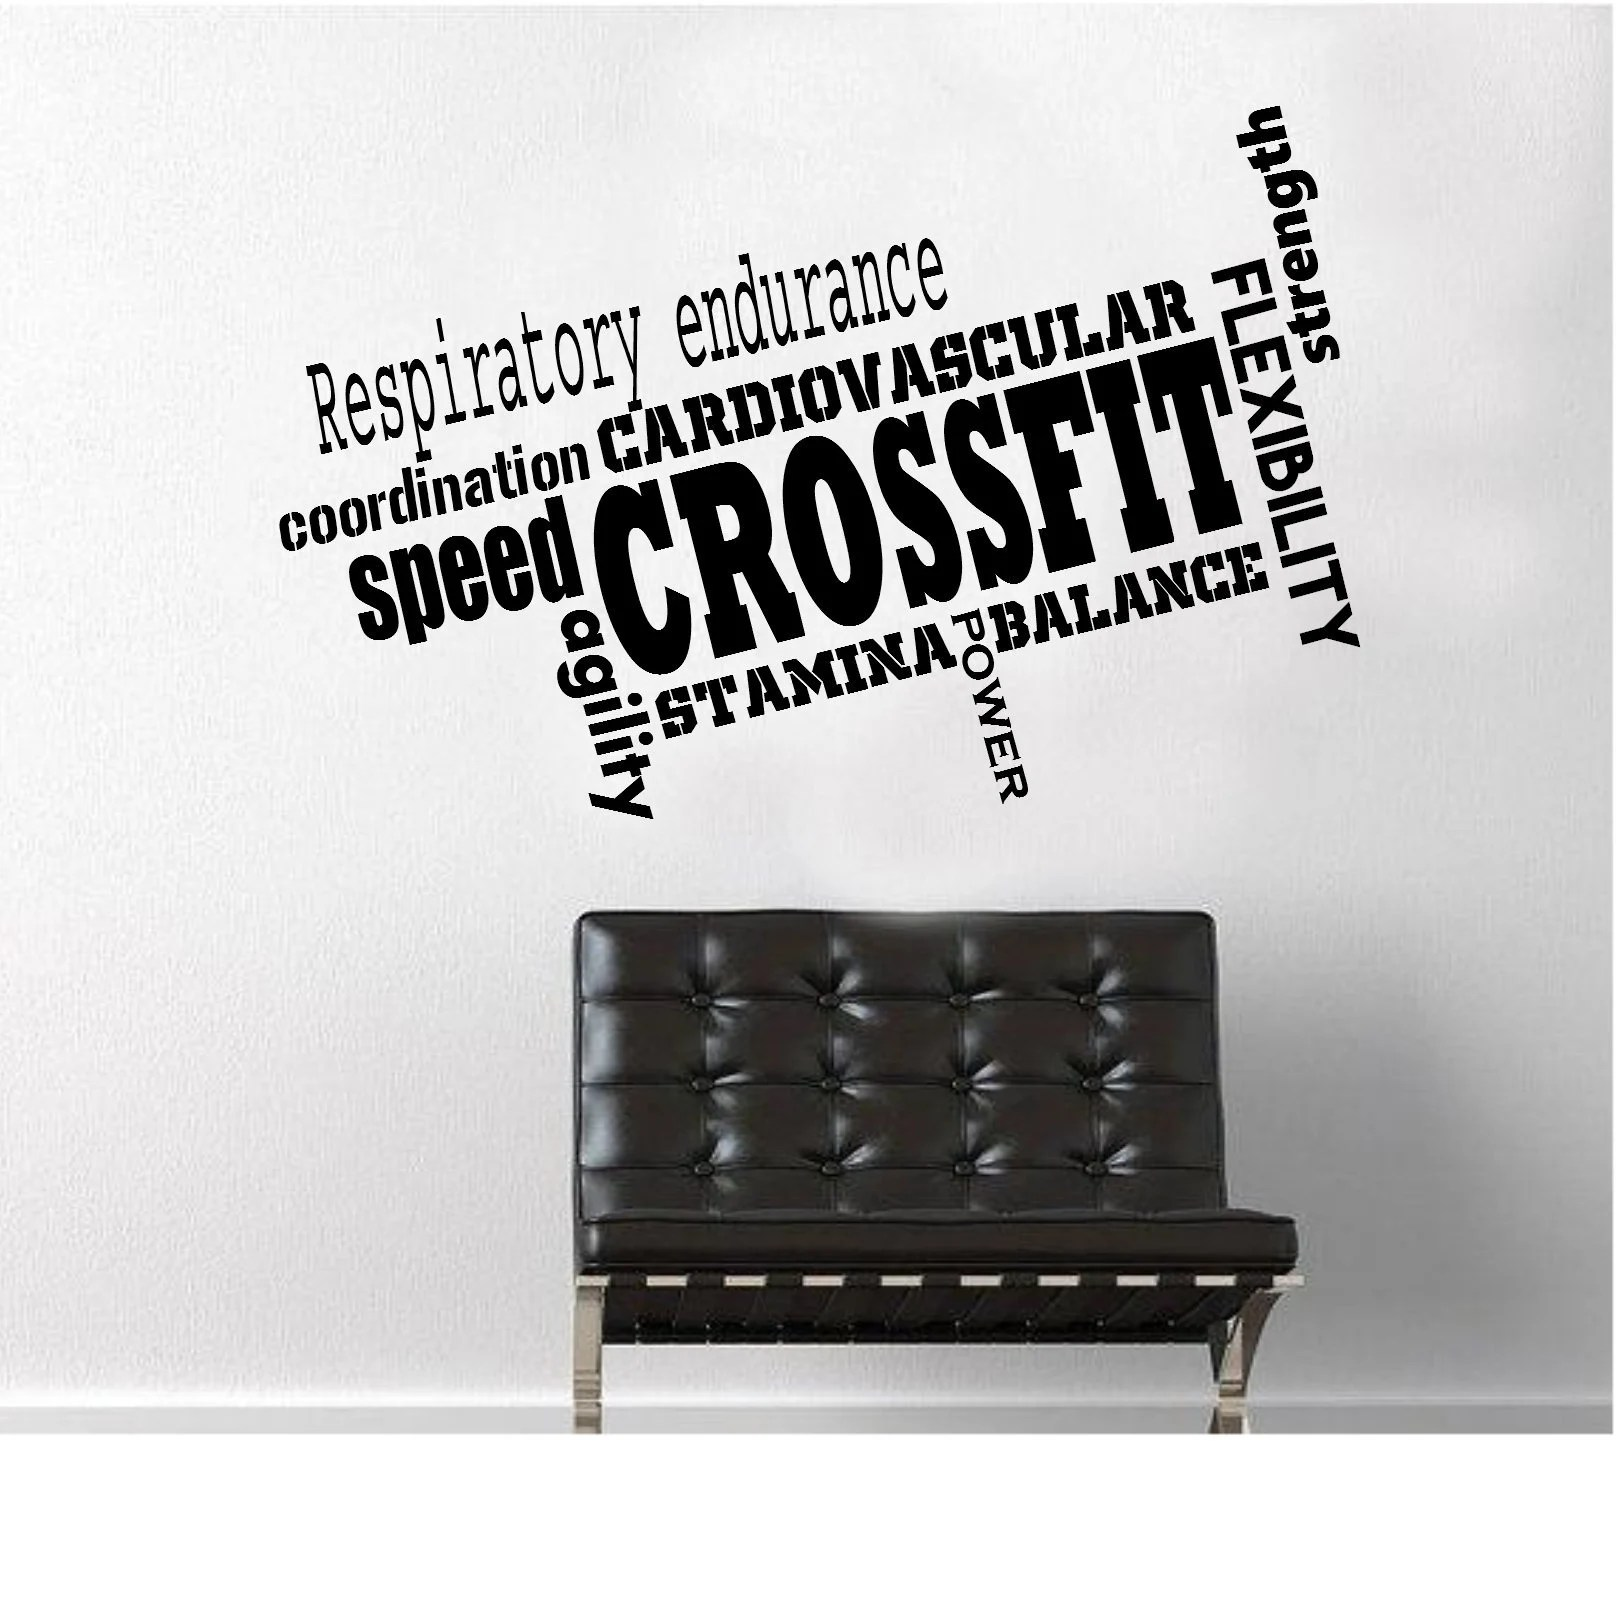 Sofa Workout Crossfit Decal Wall Decal Workout Decal Gym Decal Fitness Decal Crossfit Wall Decal